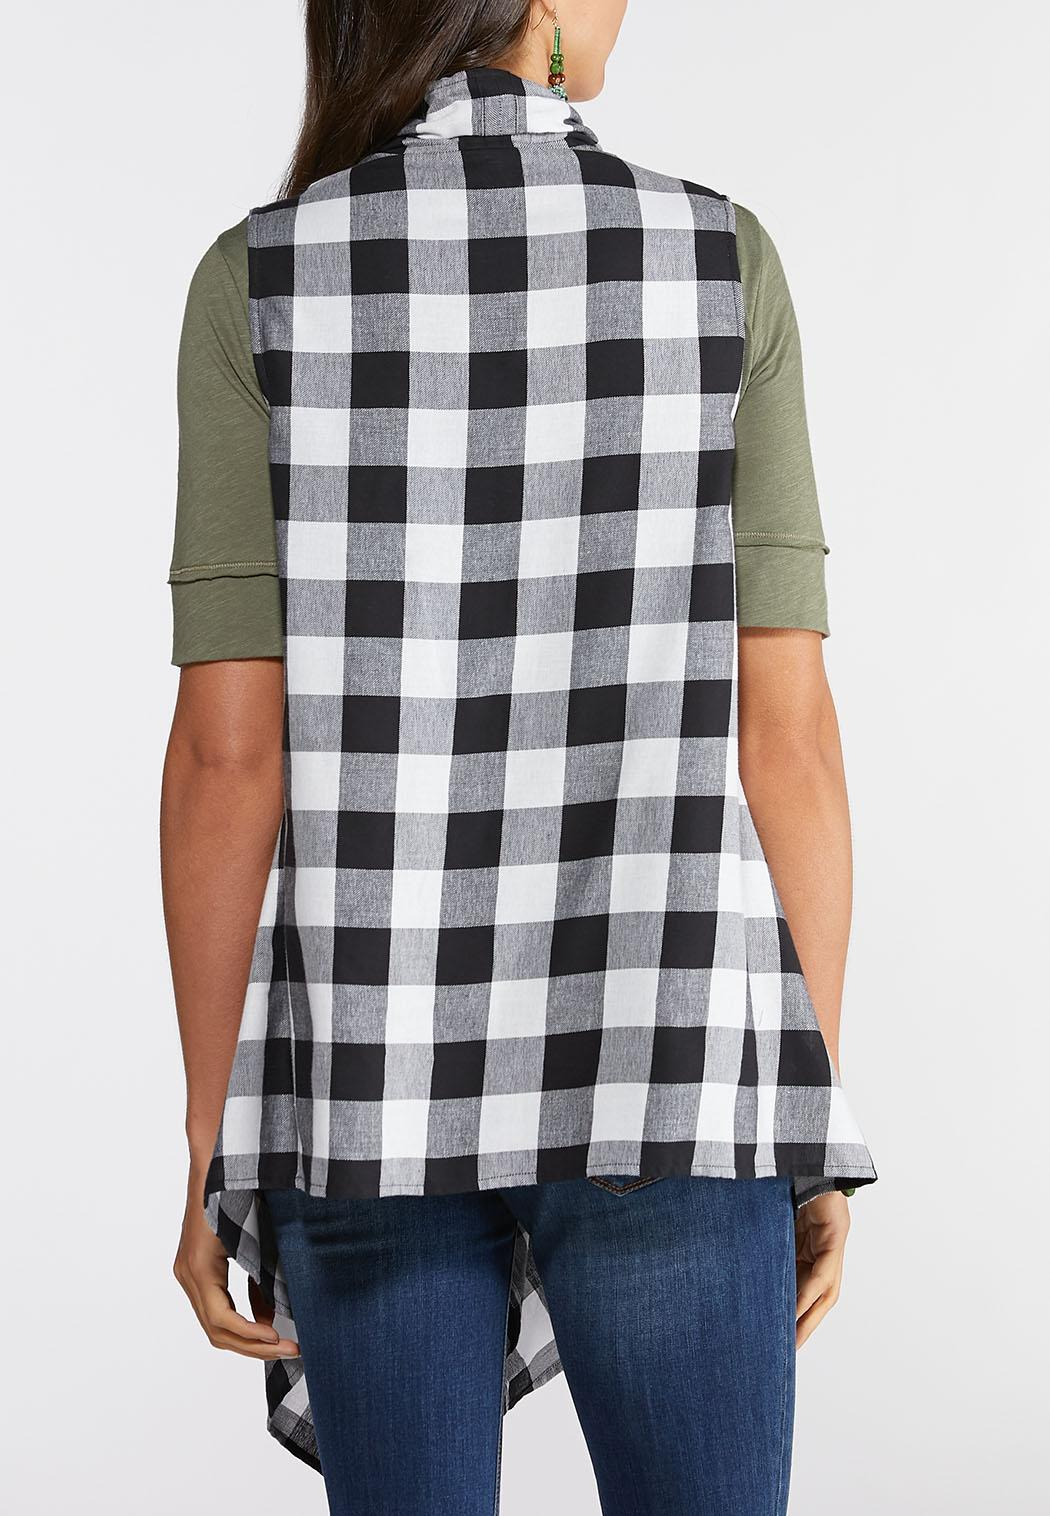 Buffalo Plaid Vest (Item #43956096)